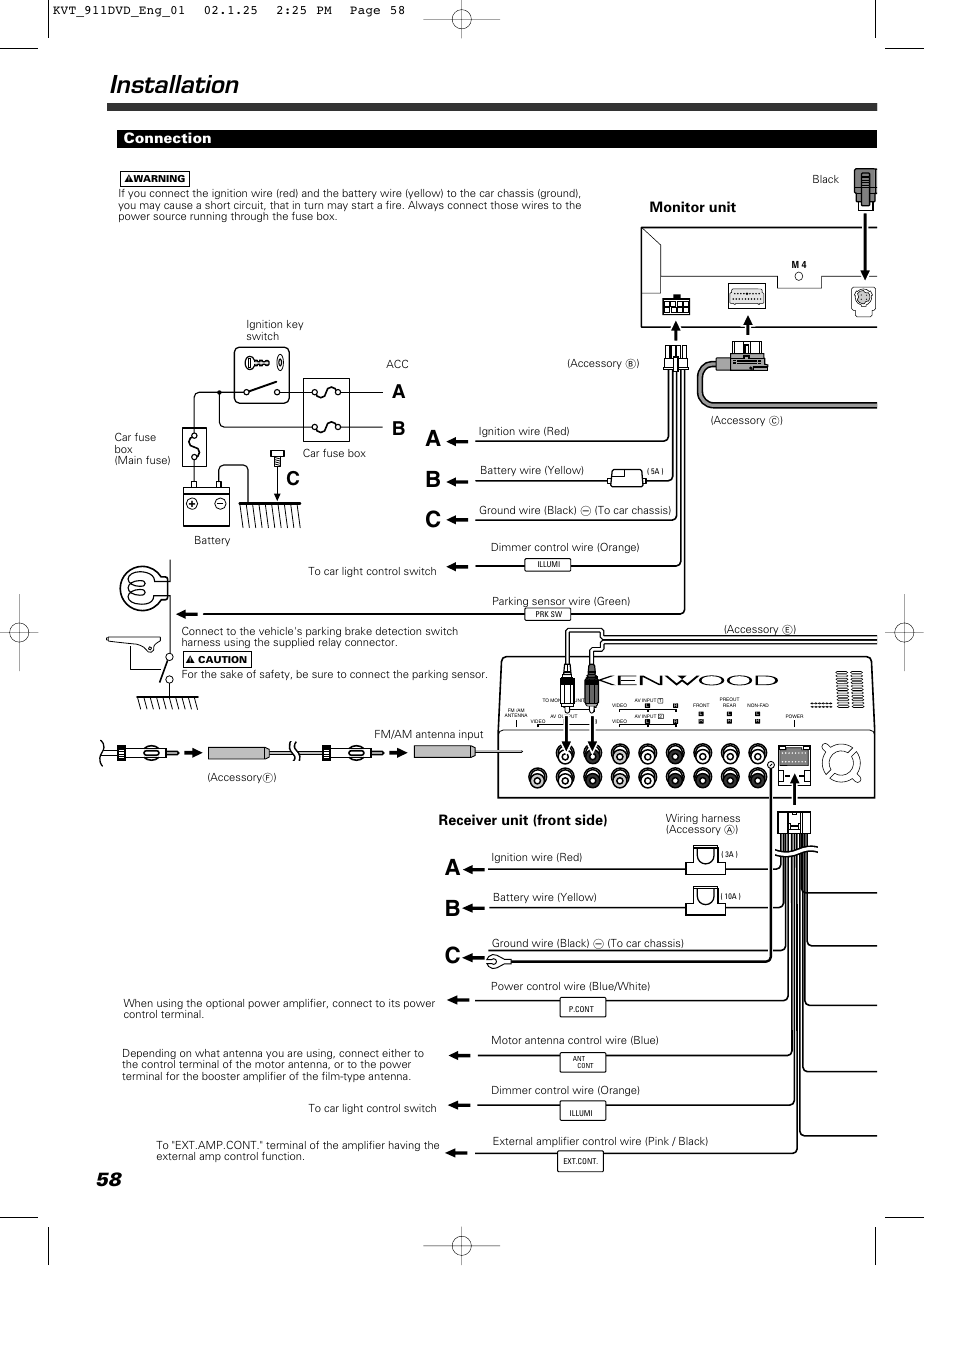 Wiring Diagram For Kenwood Kvt 617dvd : Kenwood kvt wiring harness diagram